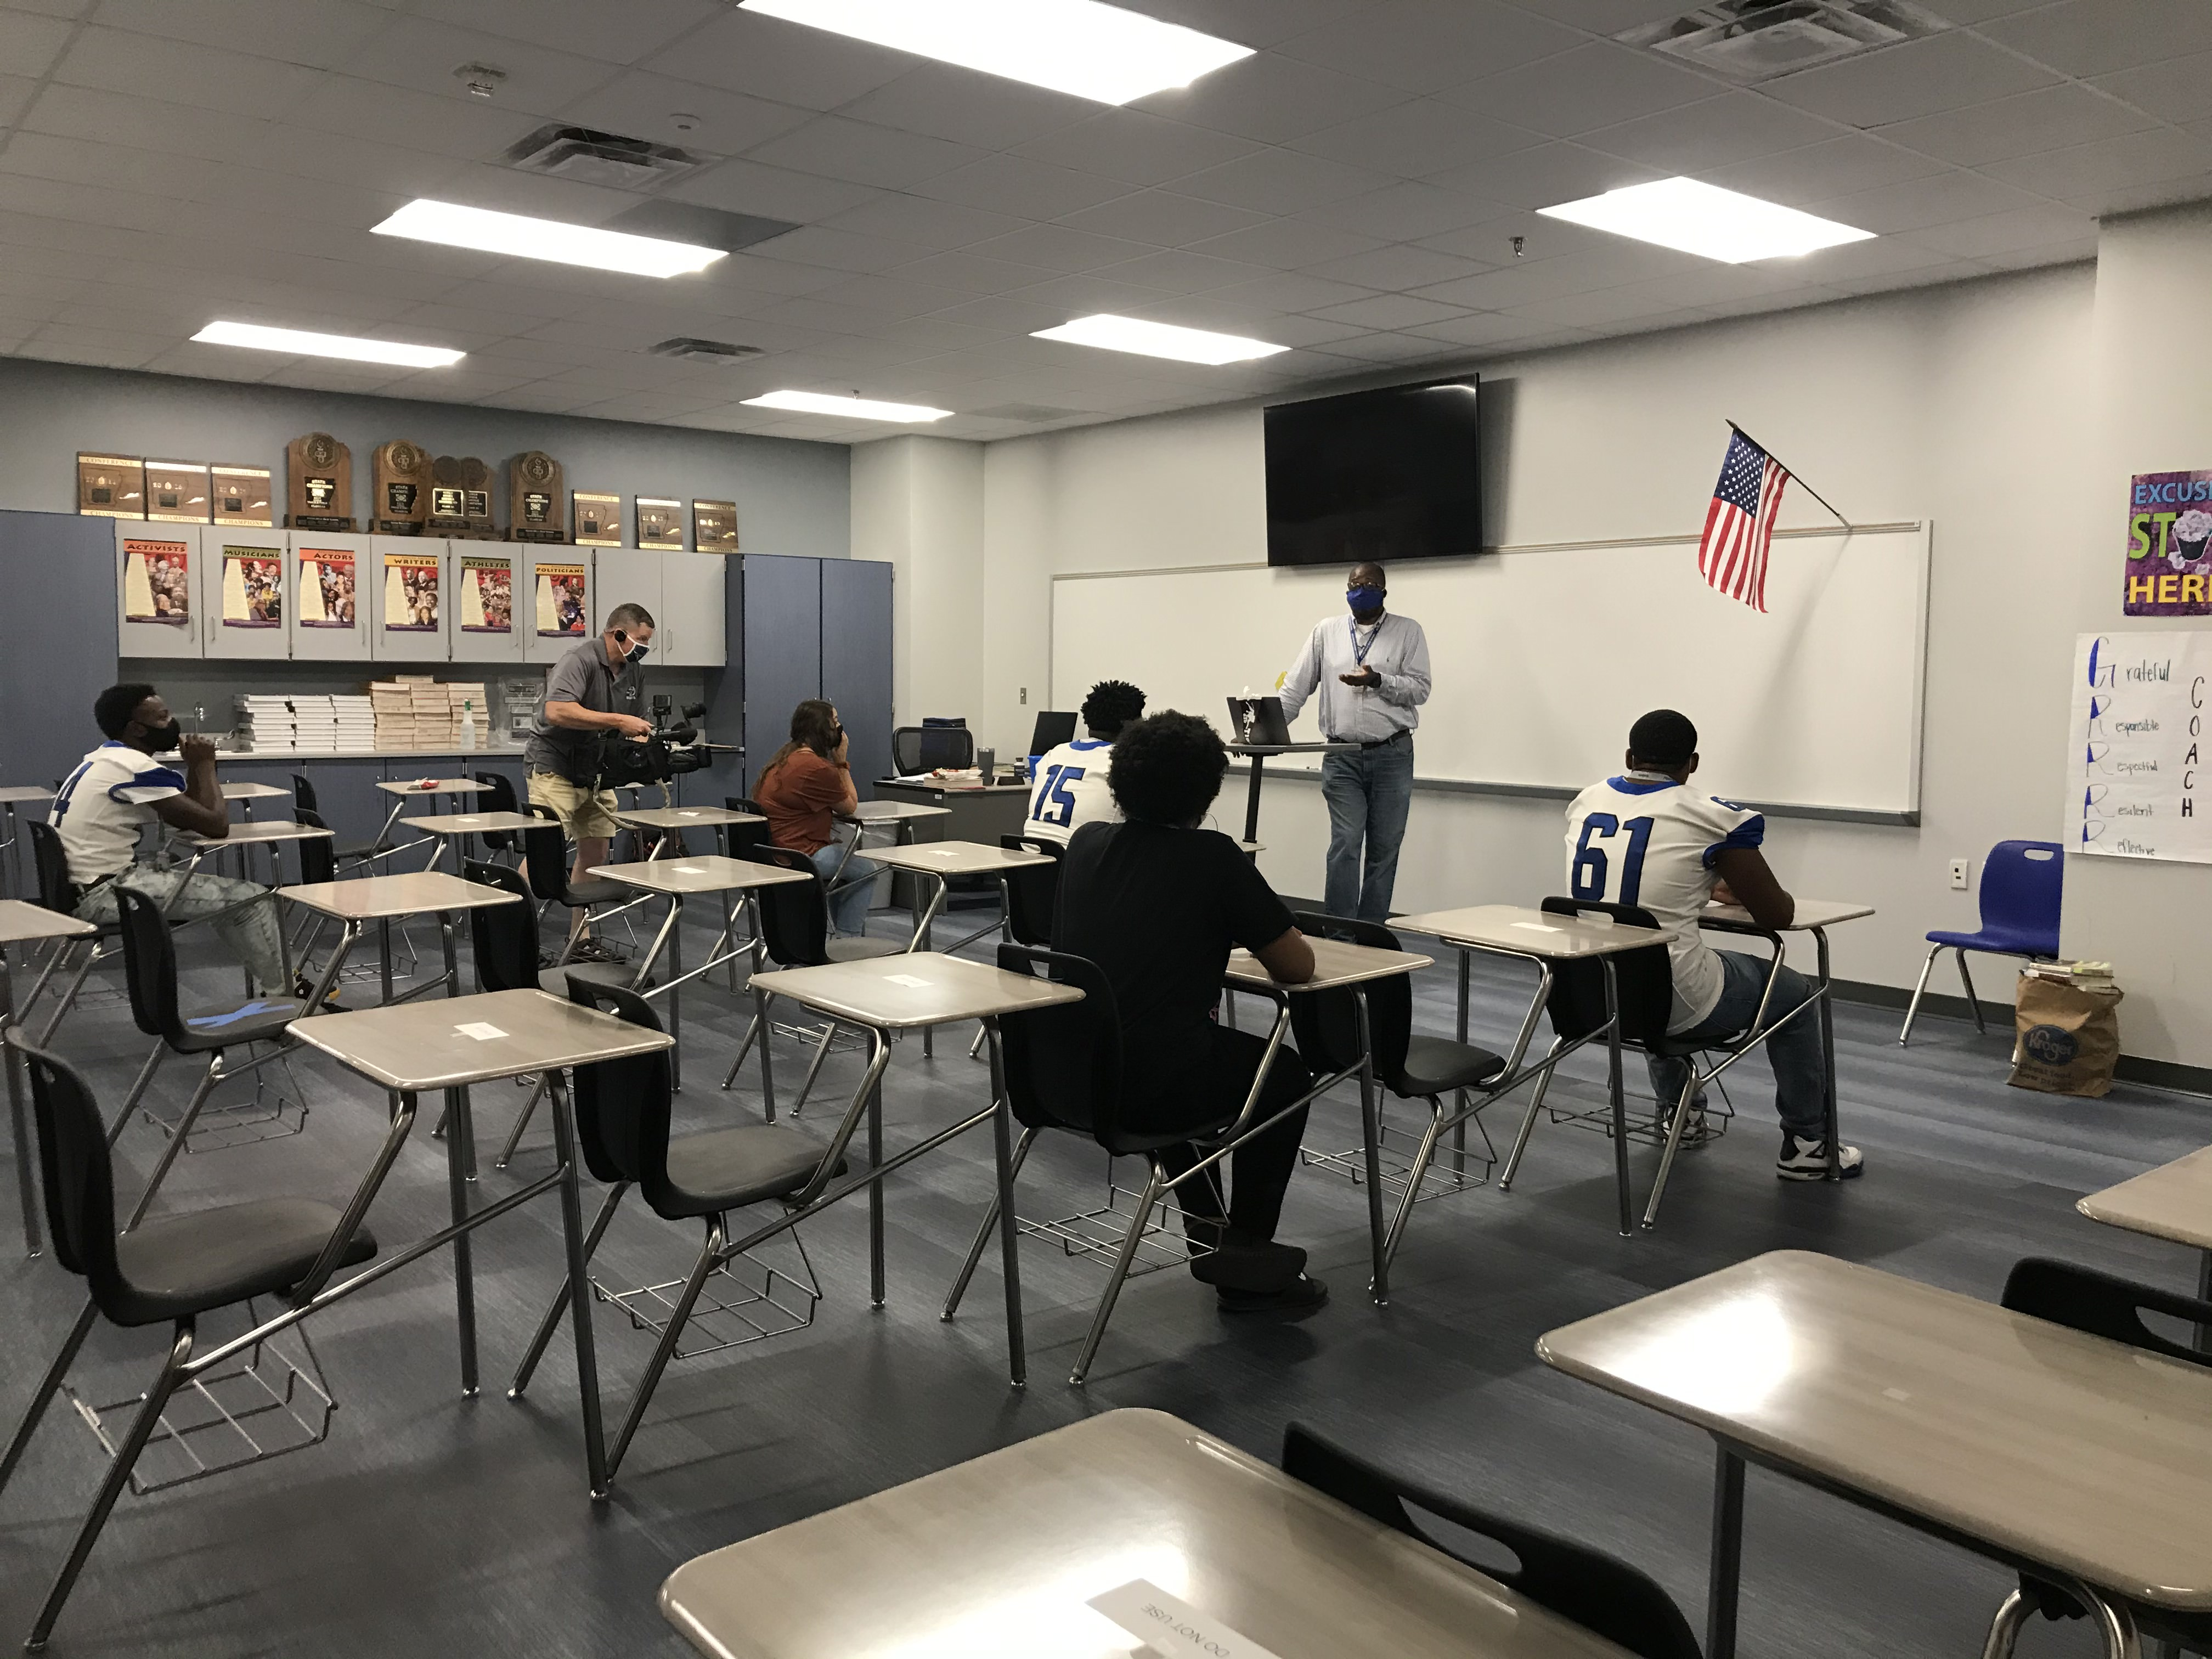 KATV: Blended learning burnout: Arkansas teachers contend with new expectations